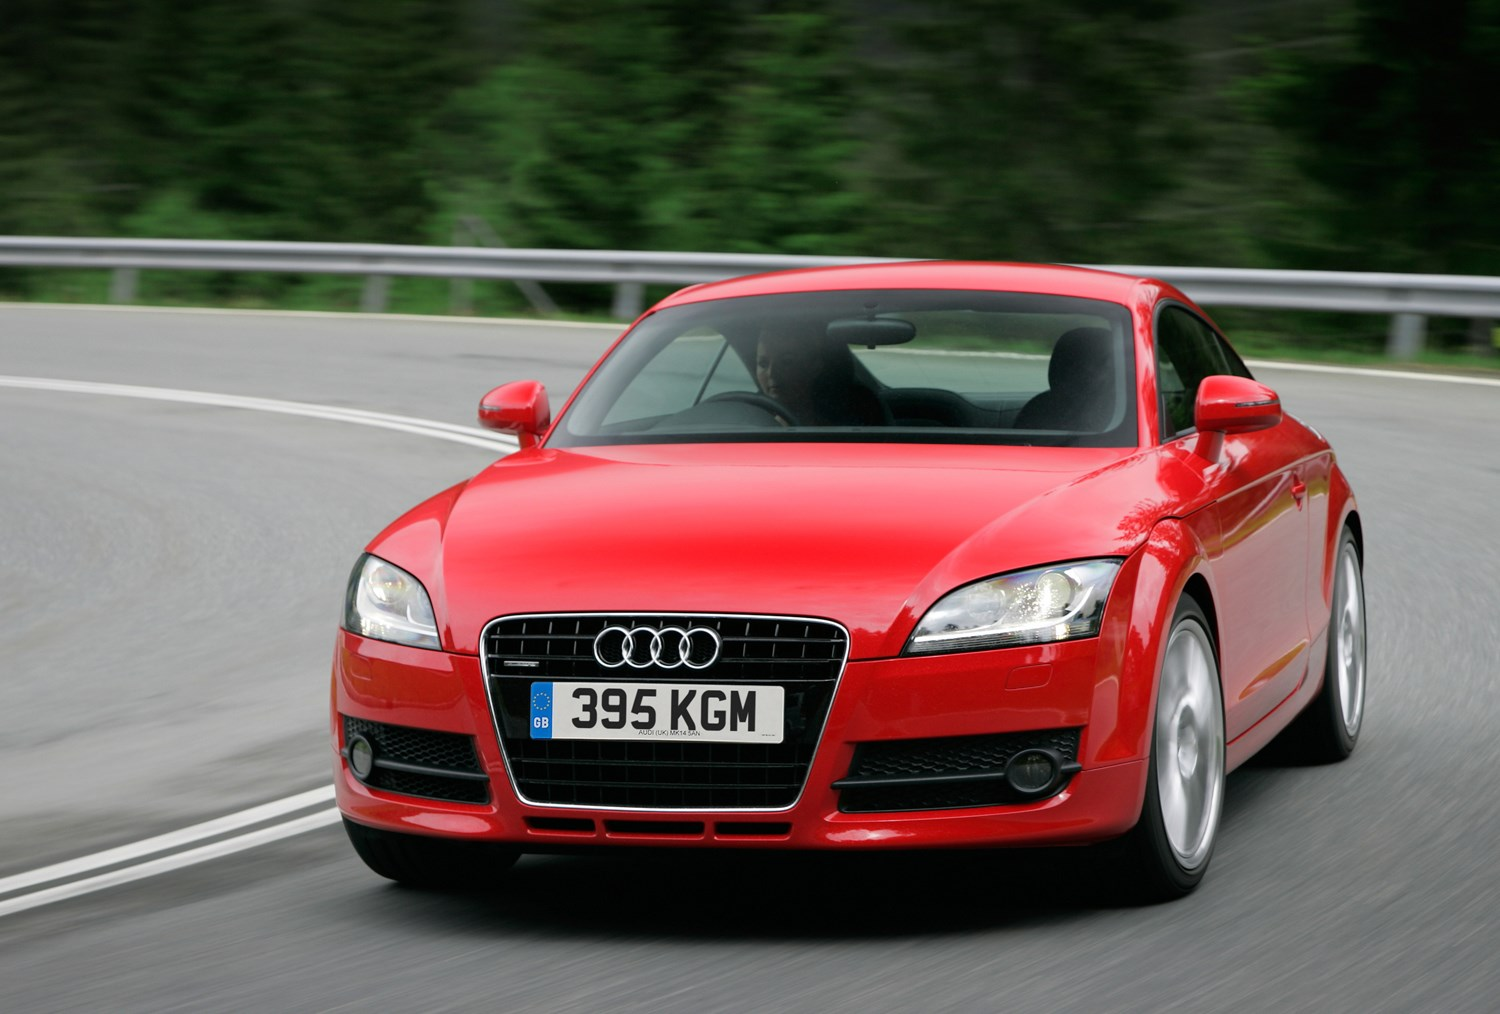 Used Audi TT Coupe (2006 - 2014) Review | Parkers